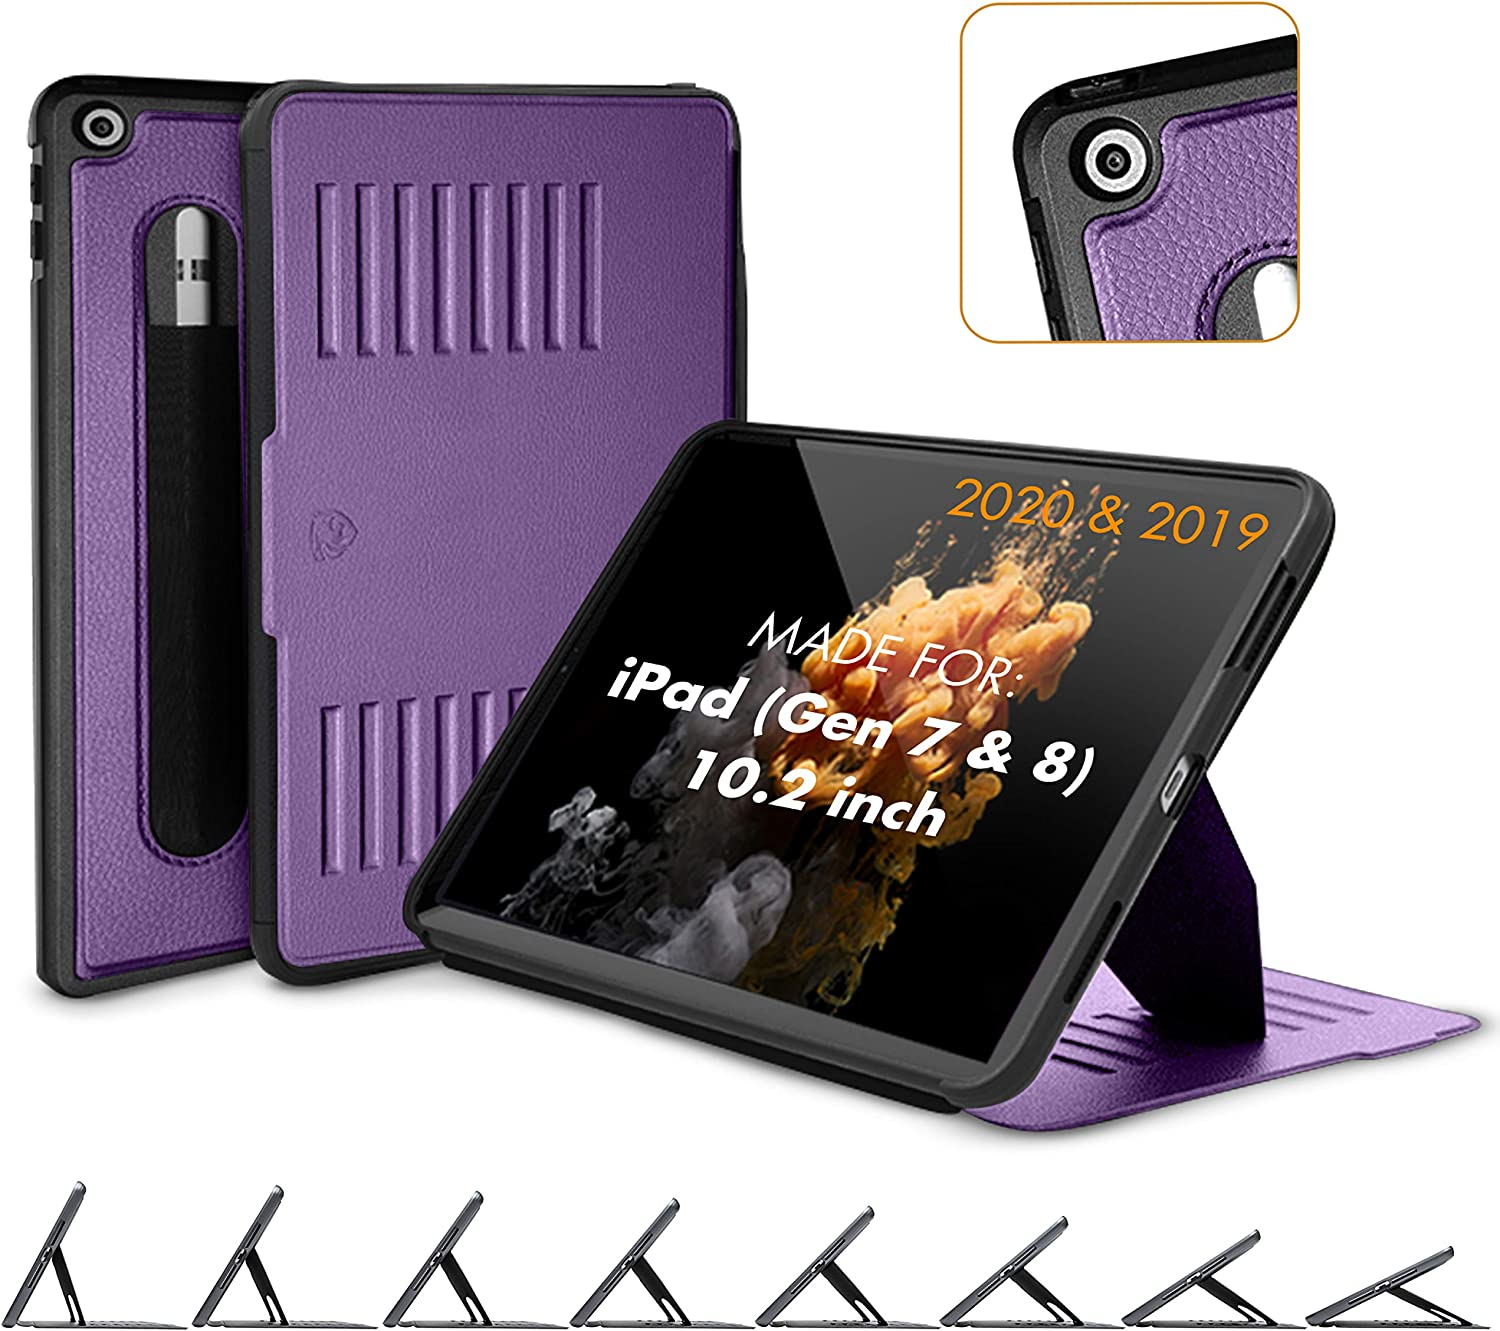 ZUGU CASE (New Model) Muse Case for iPad 10.2 Inch (2020/2019) Protective, Thin, Magnetic Stand, Sleep/Wake Cover - Purple - (Fits Model #s A2197 / A2198 / A2200 / ?A2270? / ?A2428 / ?A2429 / A2430?)